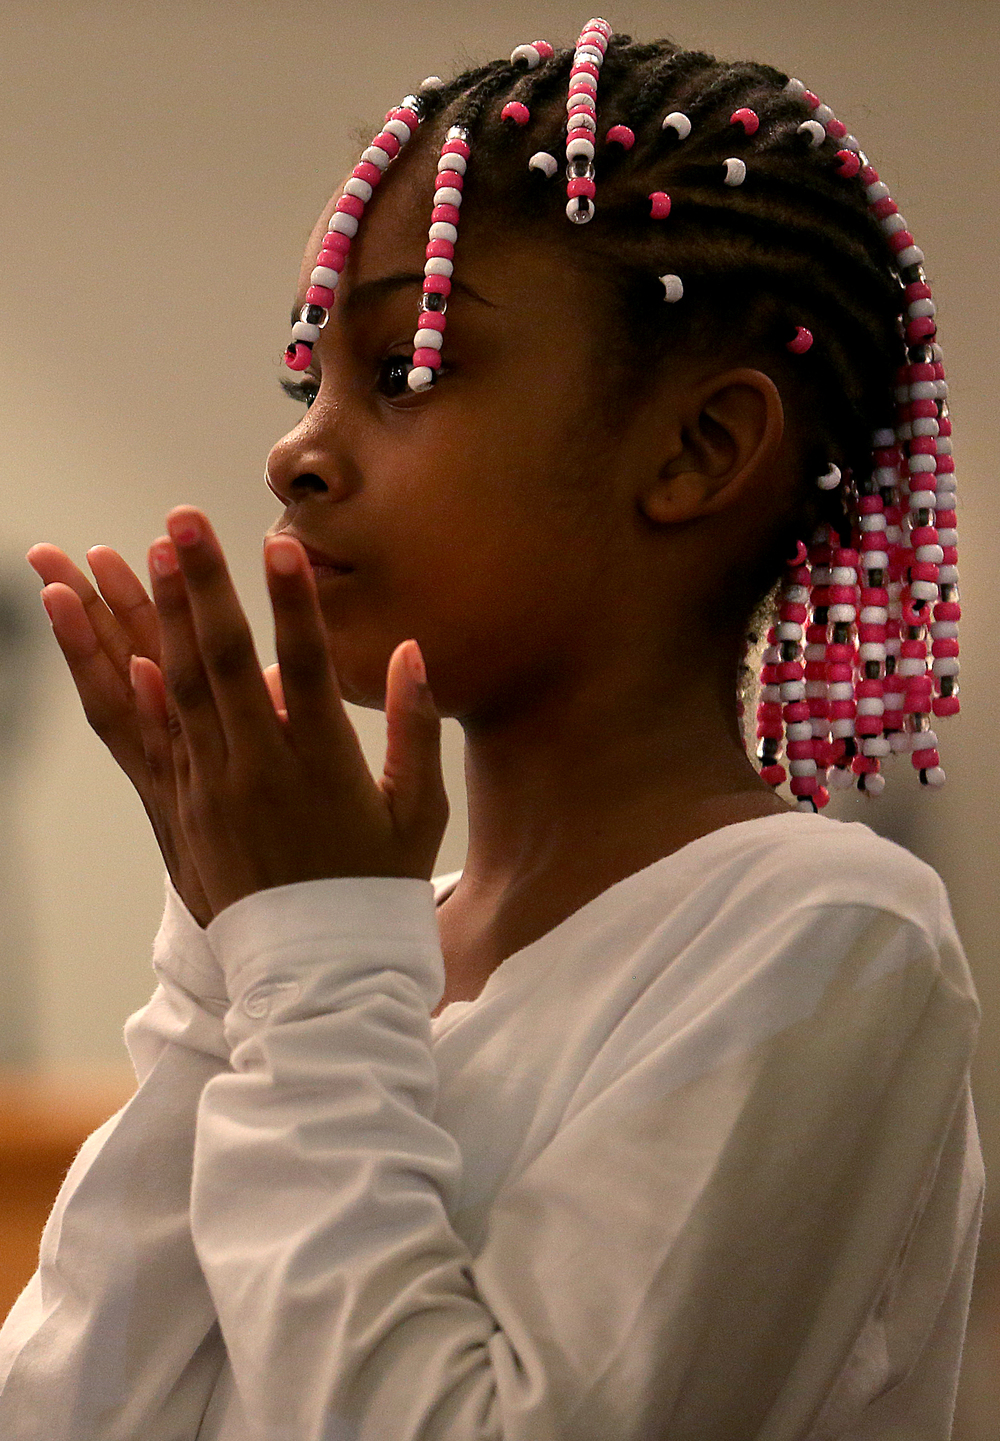 With the palms of her hands facing up towards Heaven, a young member of the Praise Dancers performs Wednesday. The group is made up of approximately 25 young people. David Spencer/The State Journal-Register